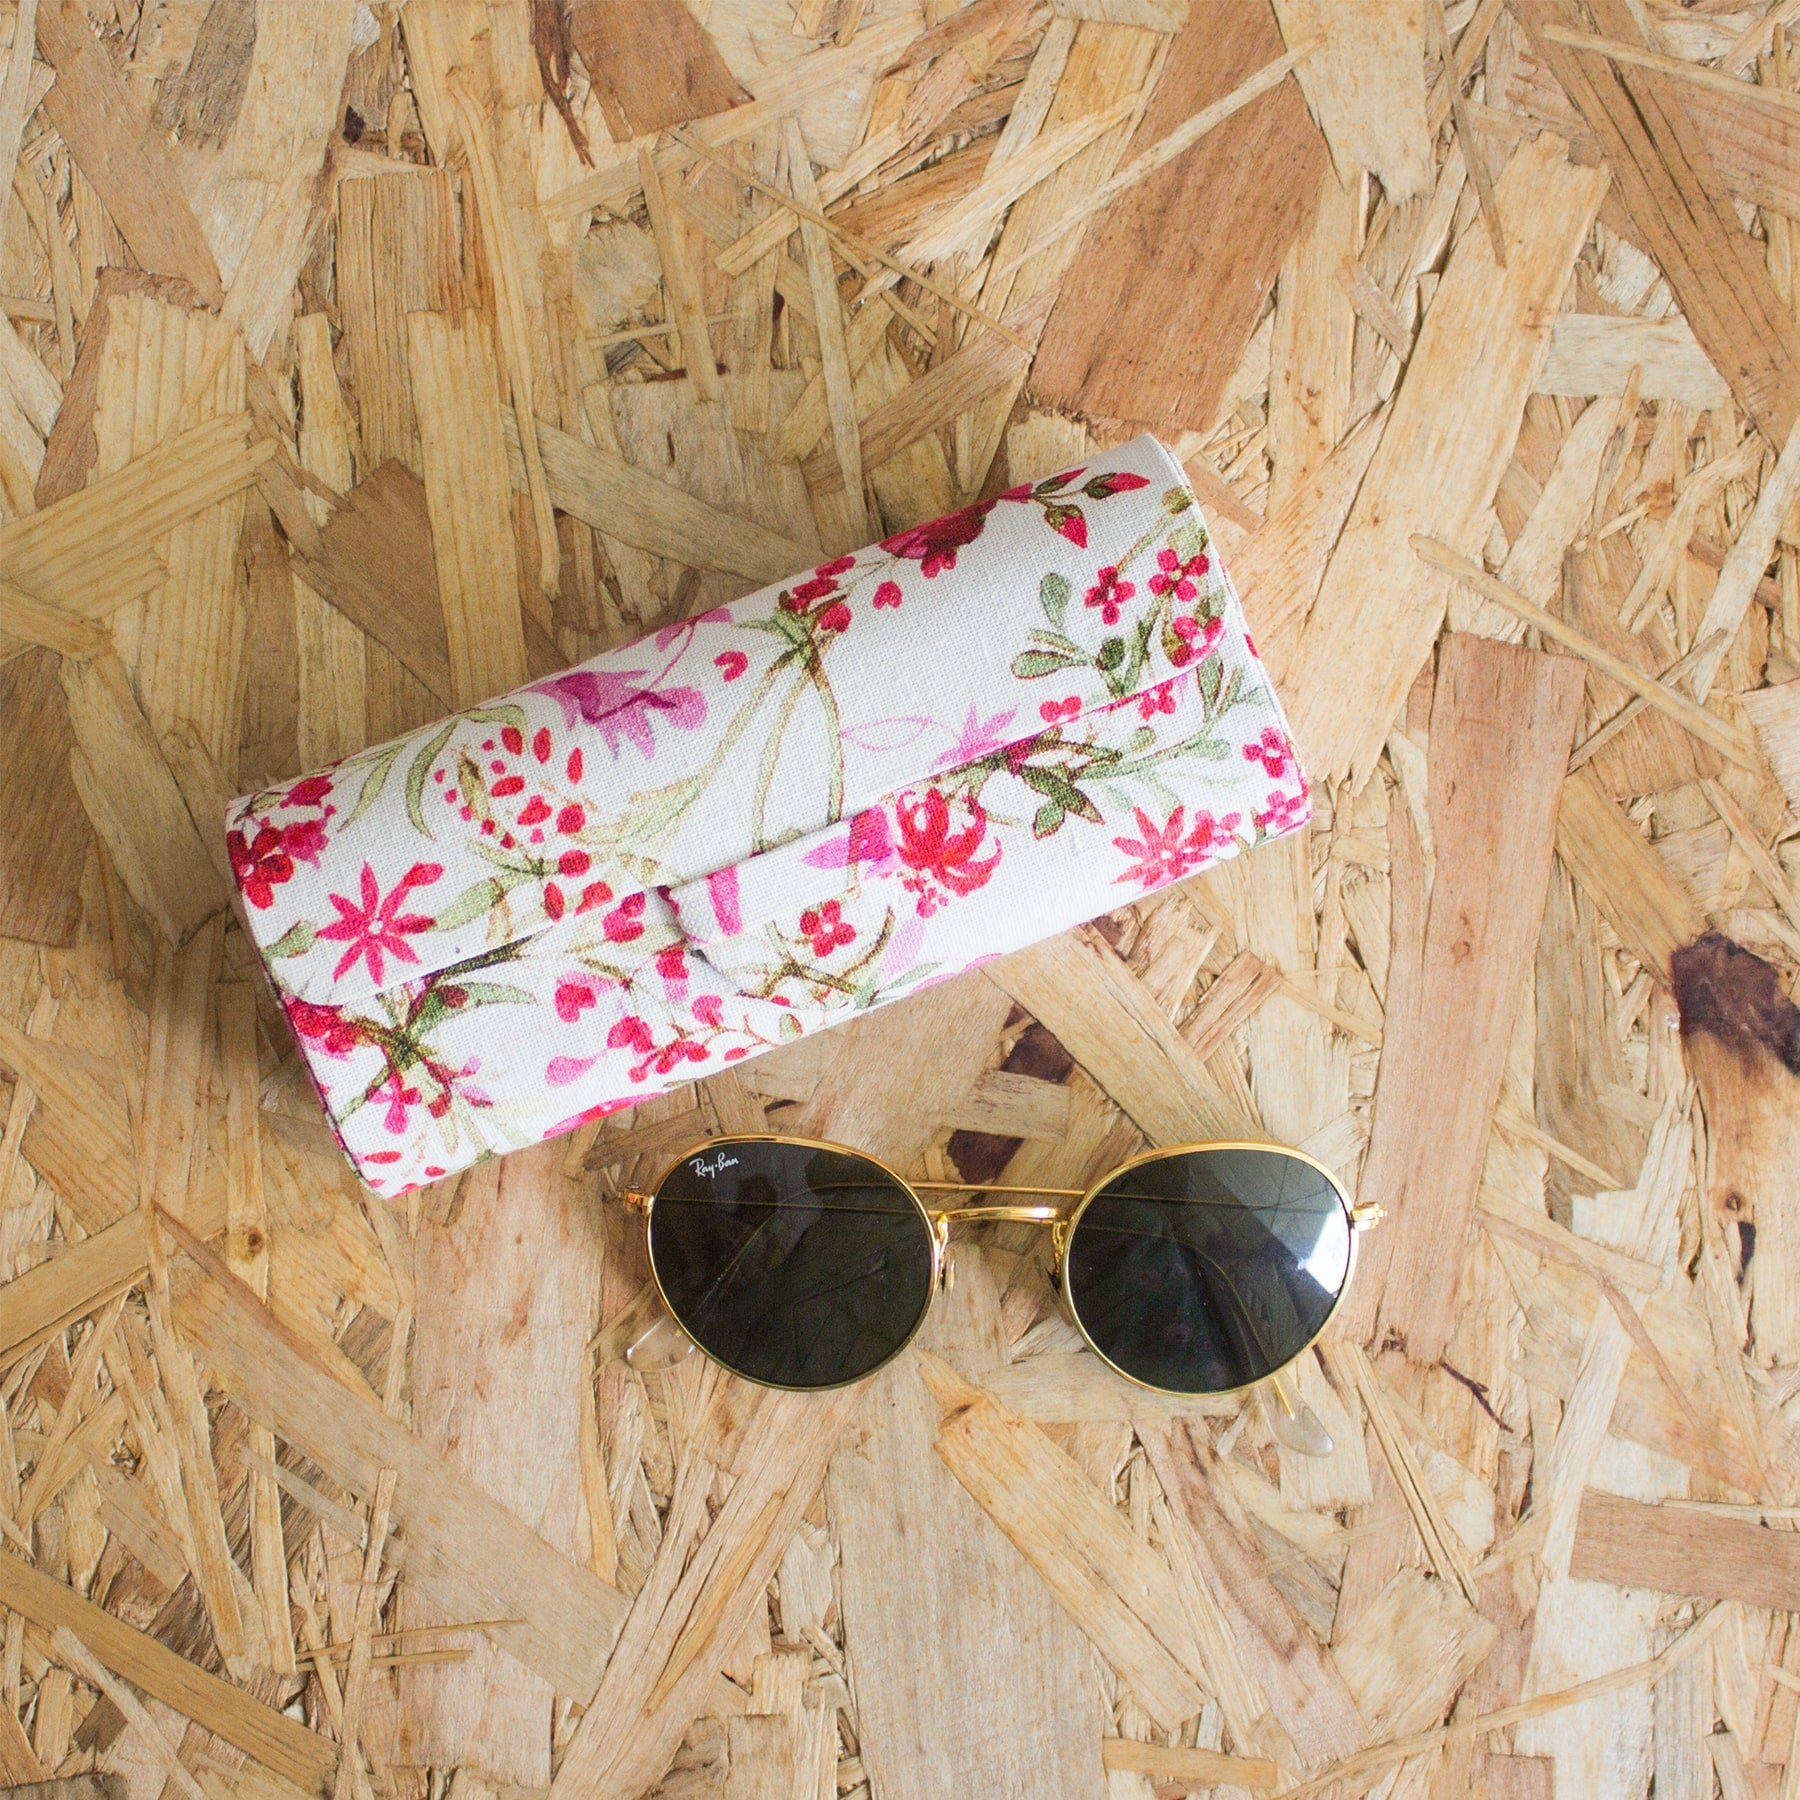 FLORAL SPECTACLE CASE